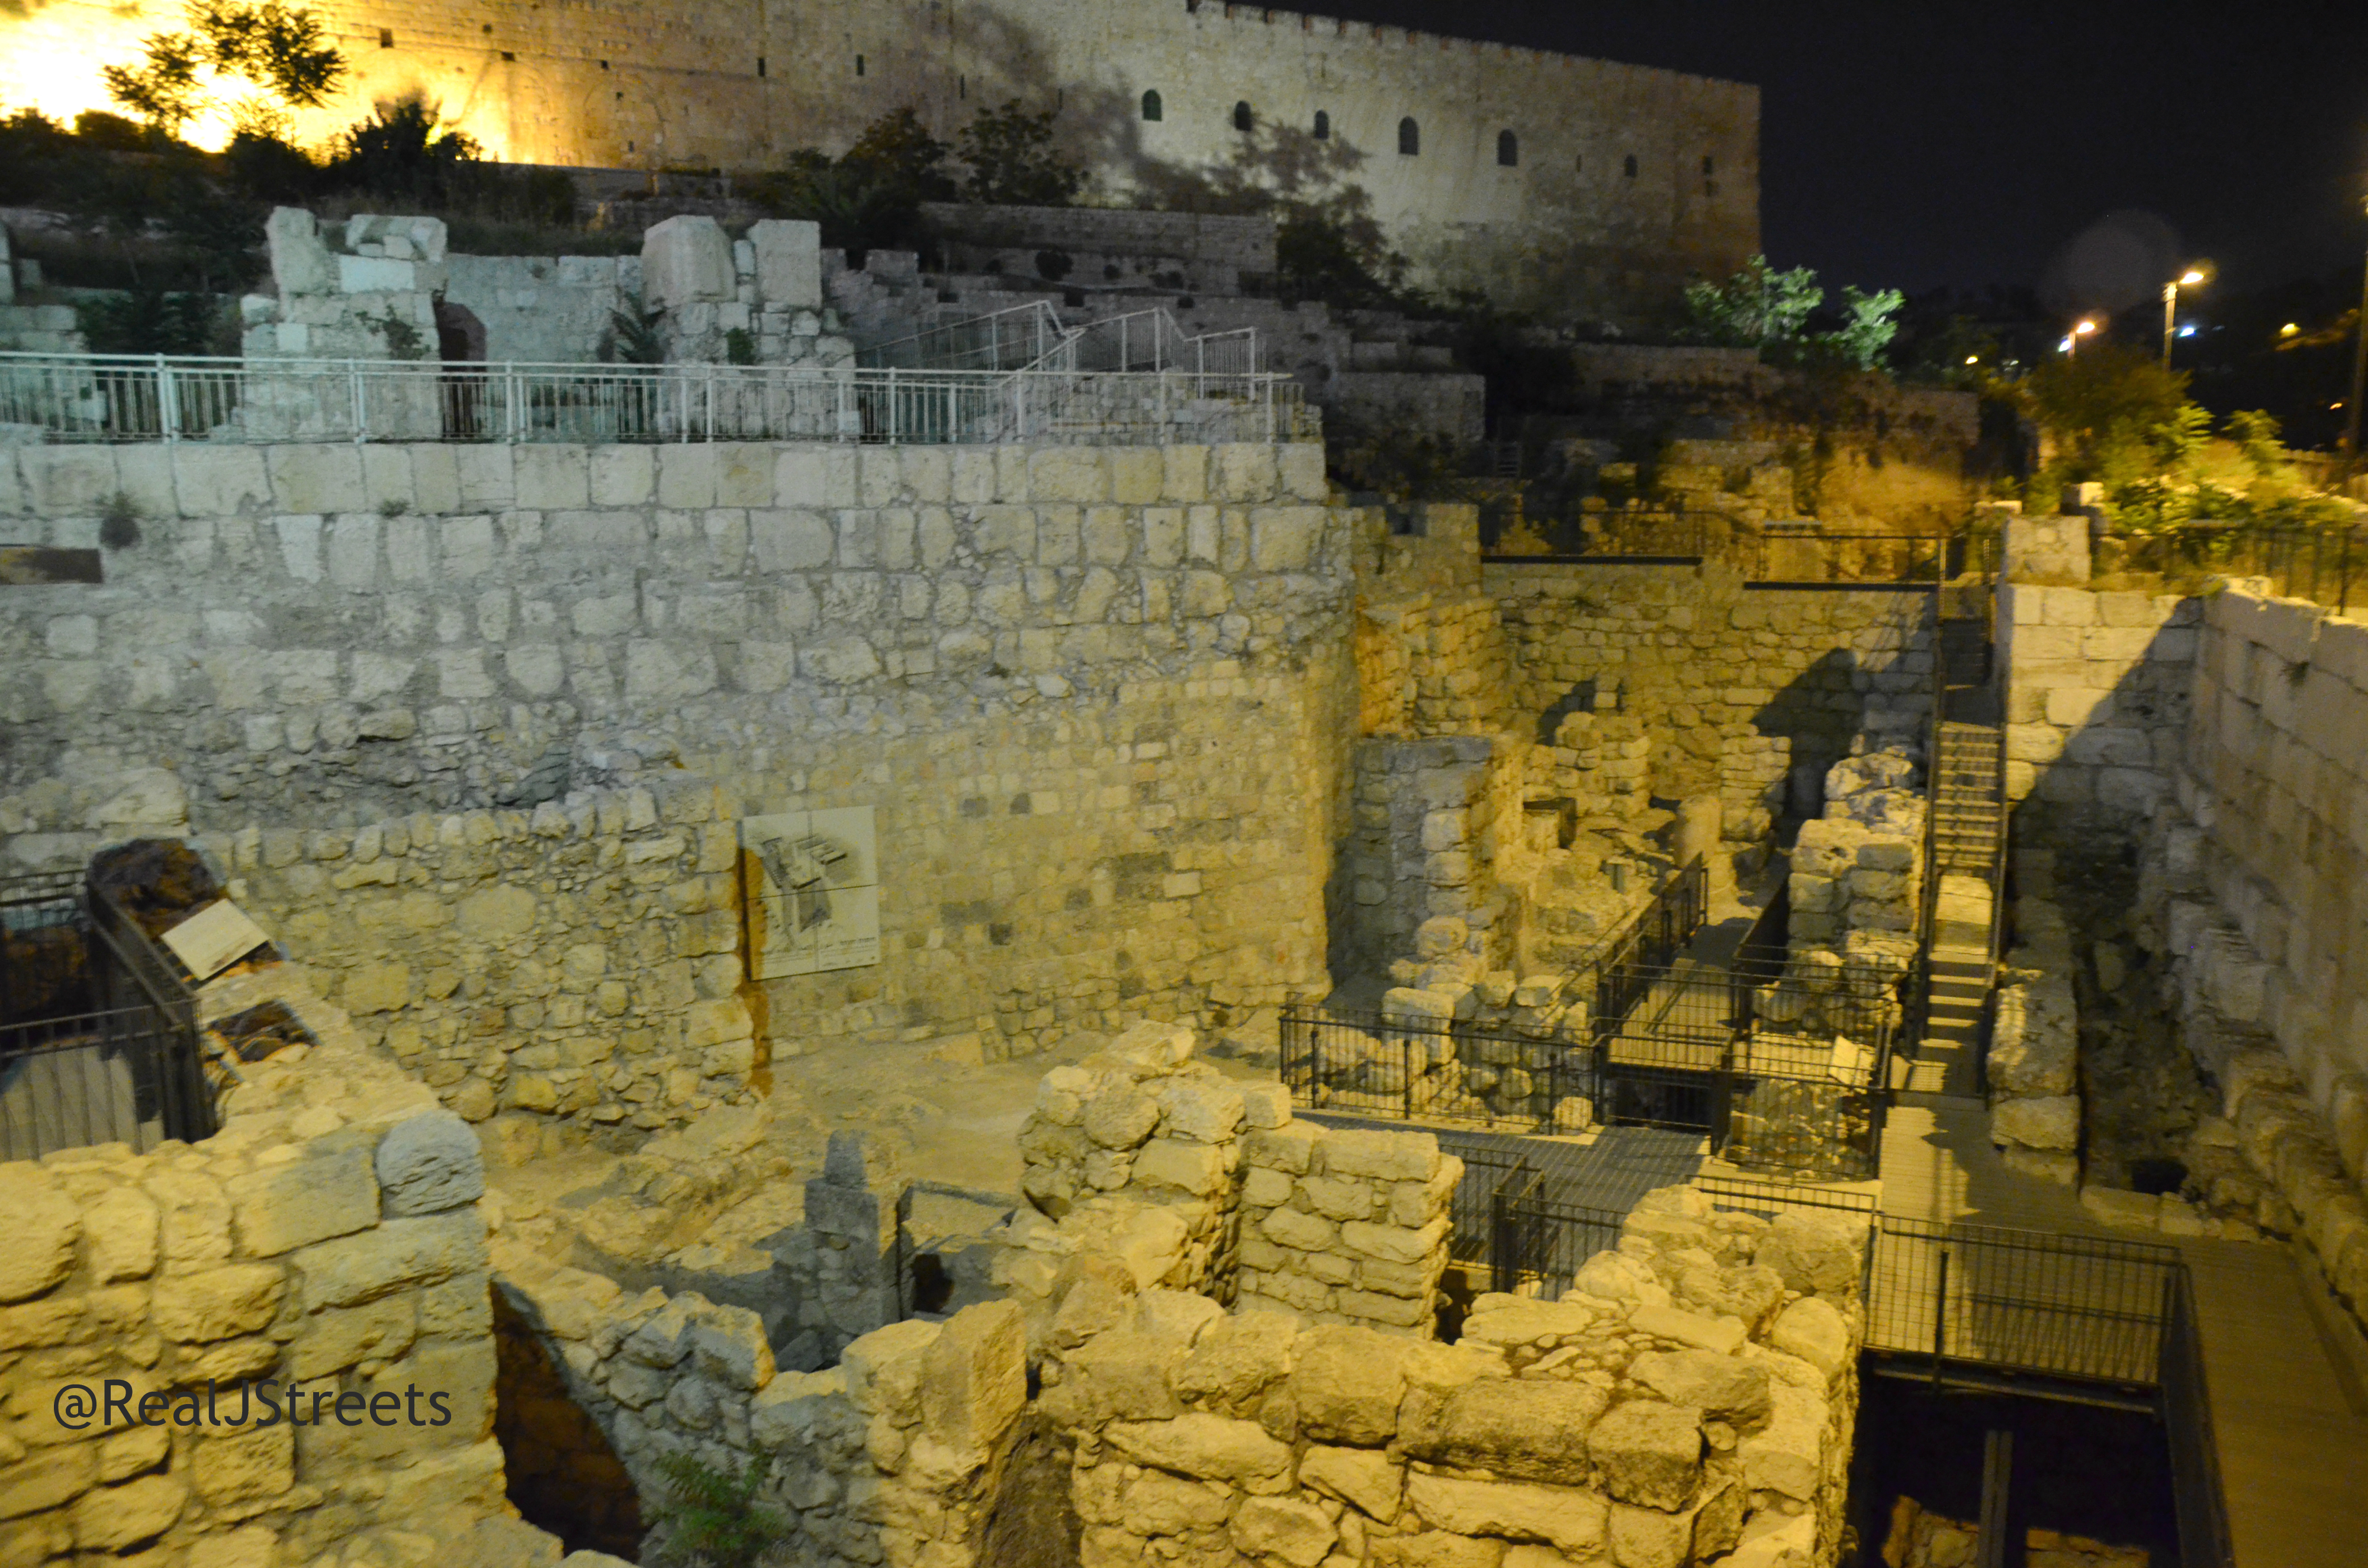 Jerusalem Israel Old City excavations.